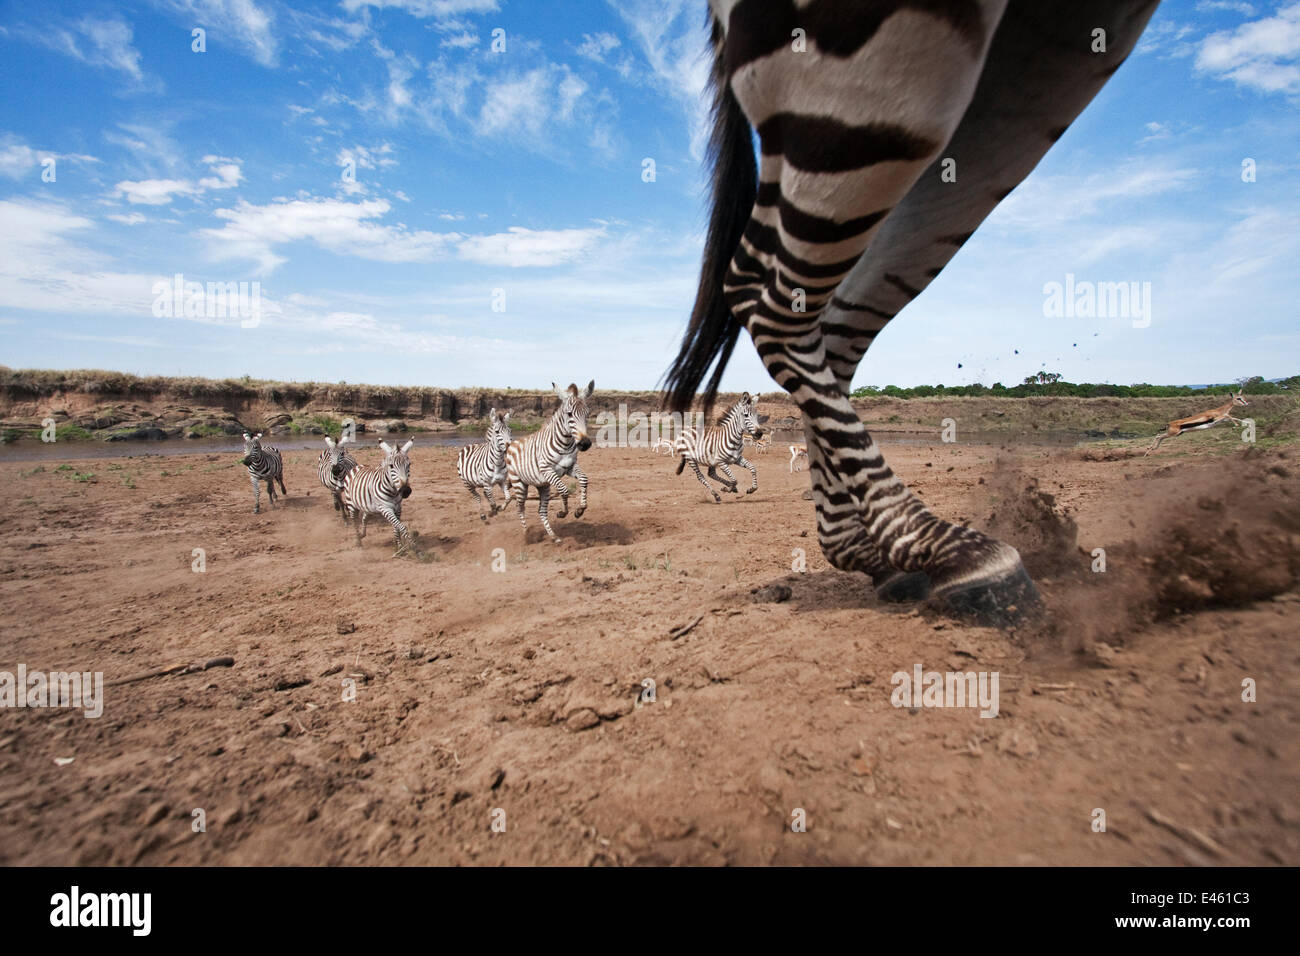 Common / Plains Zebra (Equus quagga burchellii) herd running away from the Mara River - wide angle perspective, - Stock Image